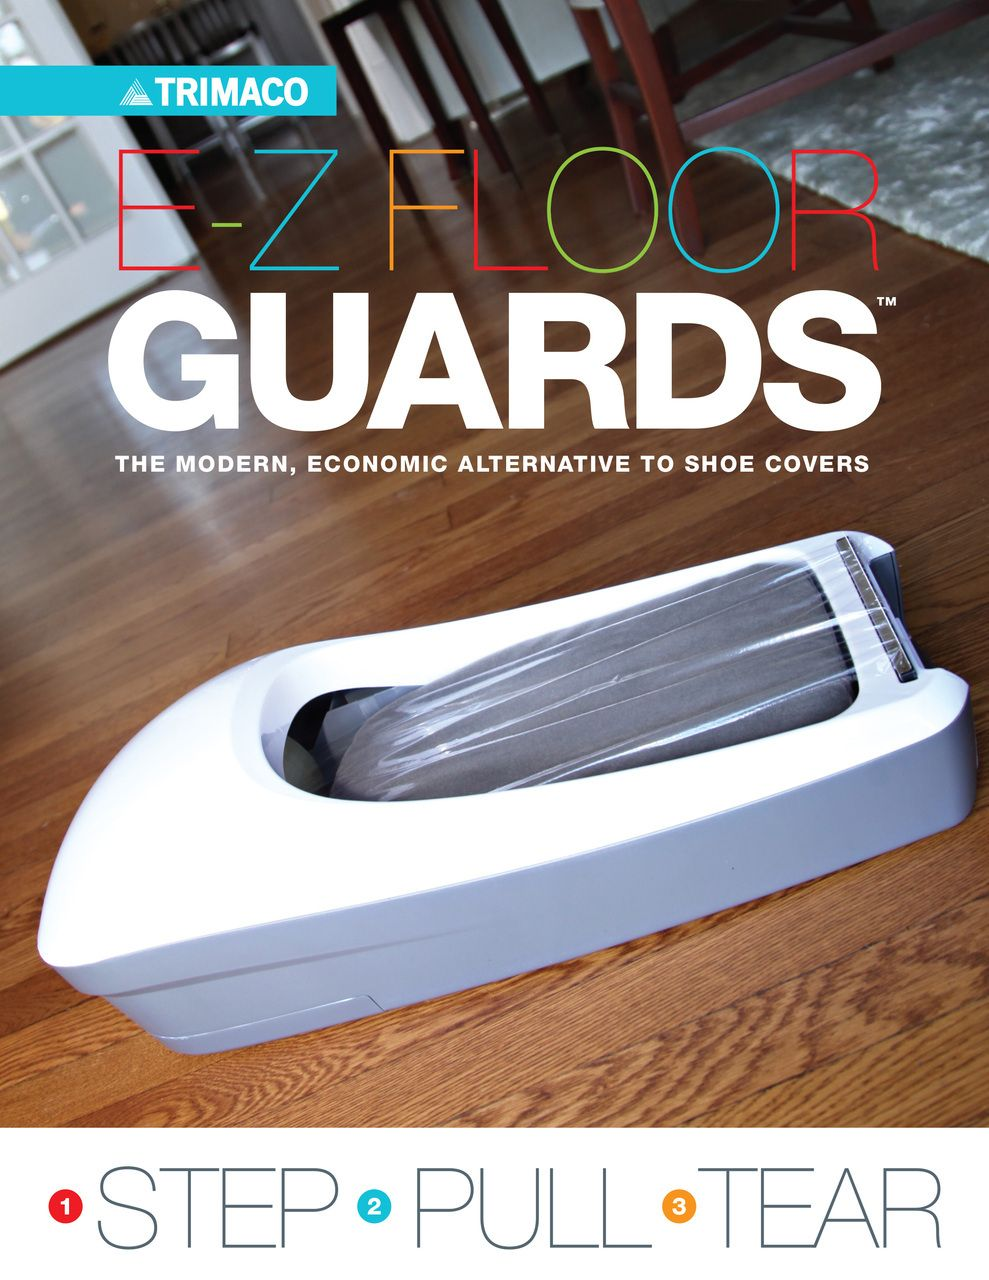 NEW E-Z Floor Guard™ E-Z FLOOR GUARDS™  THE MODERN, ECONOMIC ALTERNATIVE TO SHOE COVERS  STEP PULL TEAR  Trimaco E-Z Floor Guards™ works by easily placing a sheet of adhesive plastic film on the bottom of your shoe or boot to avoid tracking dirt and debris into a house or clean room. Simply STEP, PULL and TEAR. No need to drop your tools and bend over to put on a traditional shoe cover.